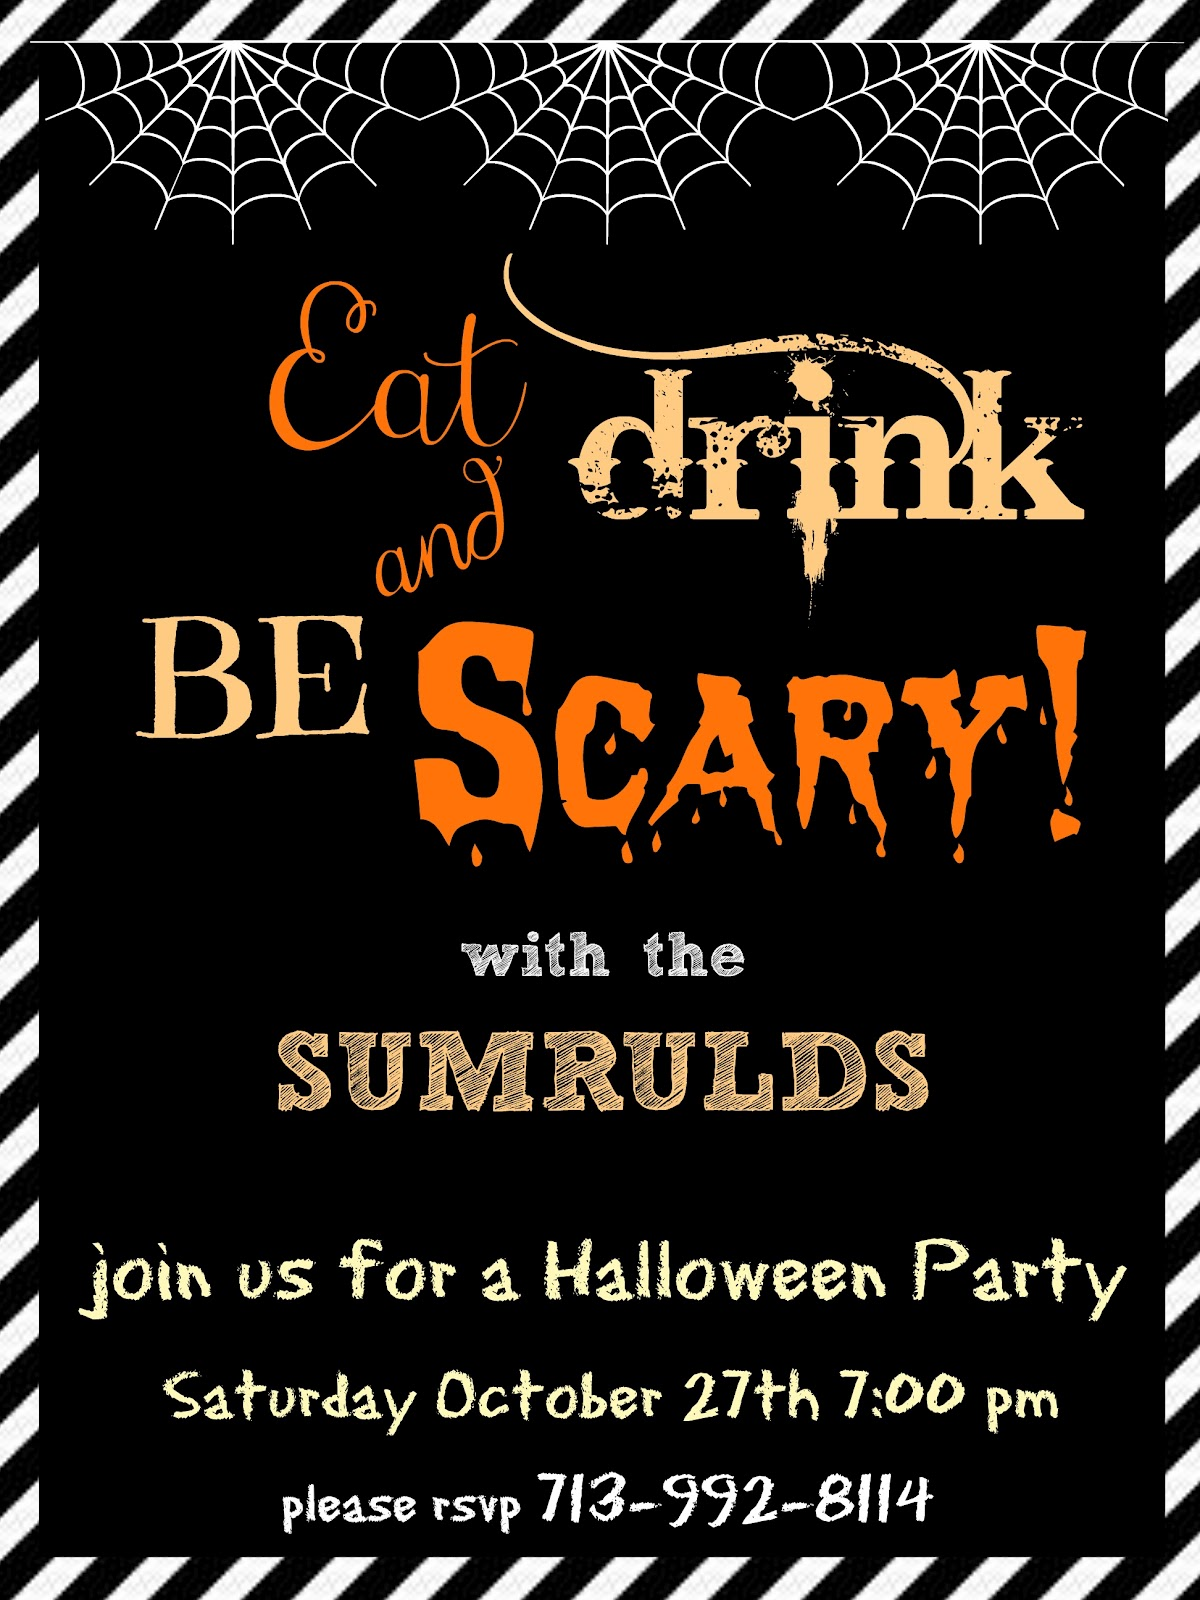 Crafty in Crosby: Halloween Party Invitations - Please help us choose!